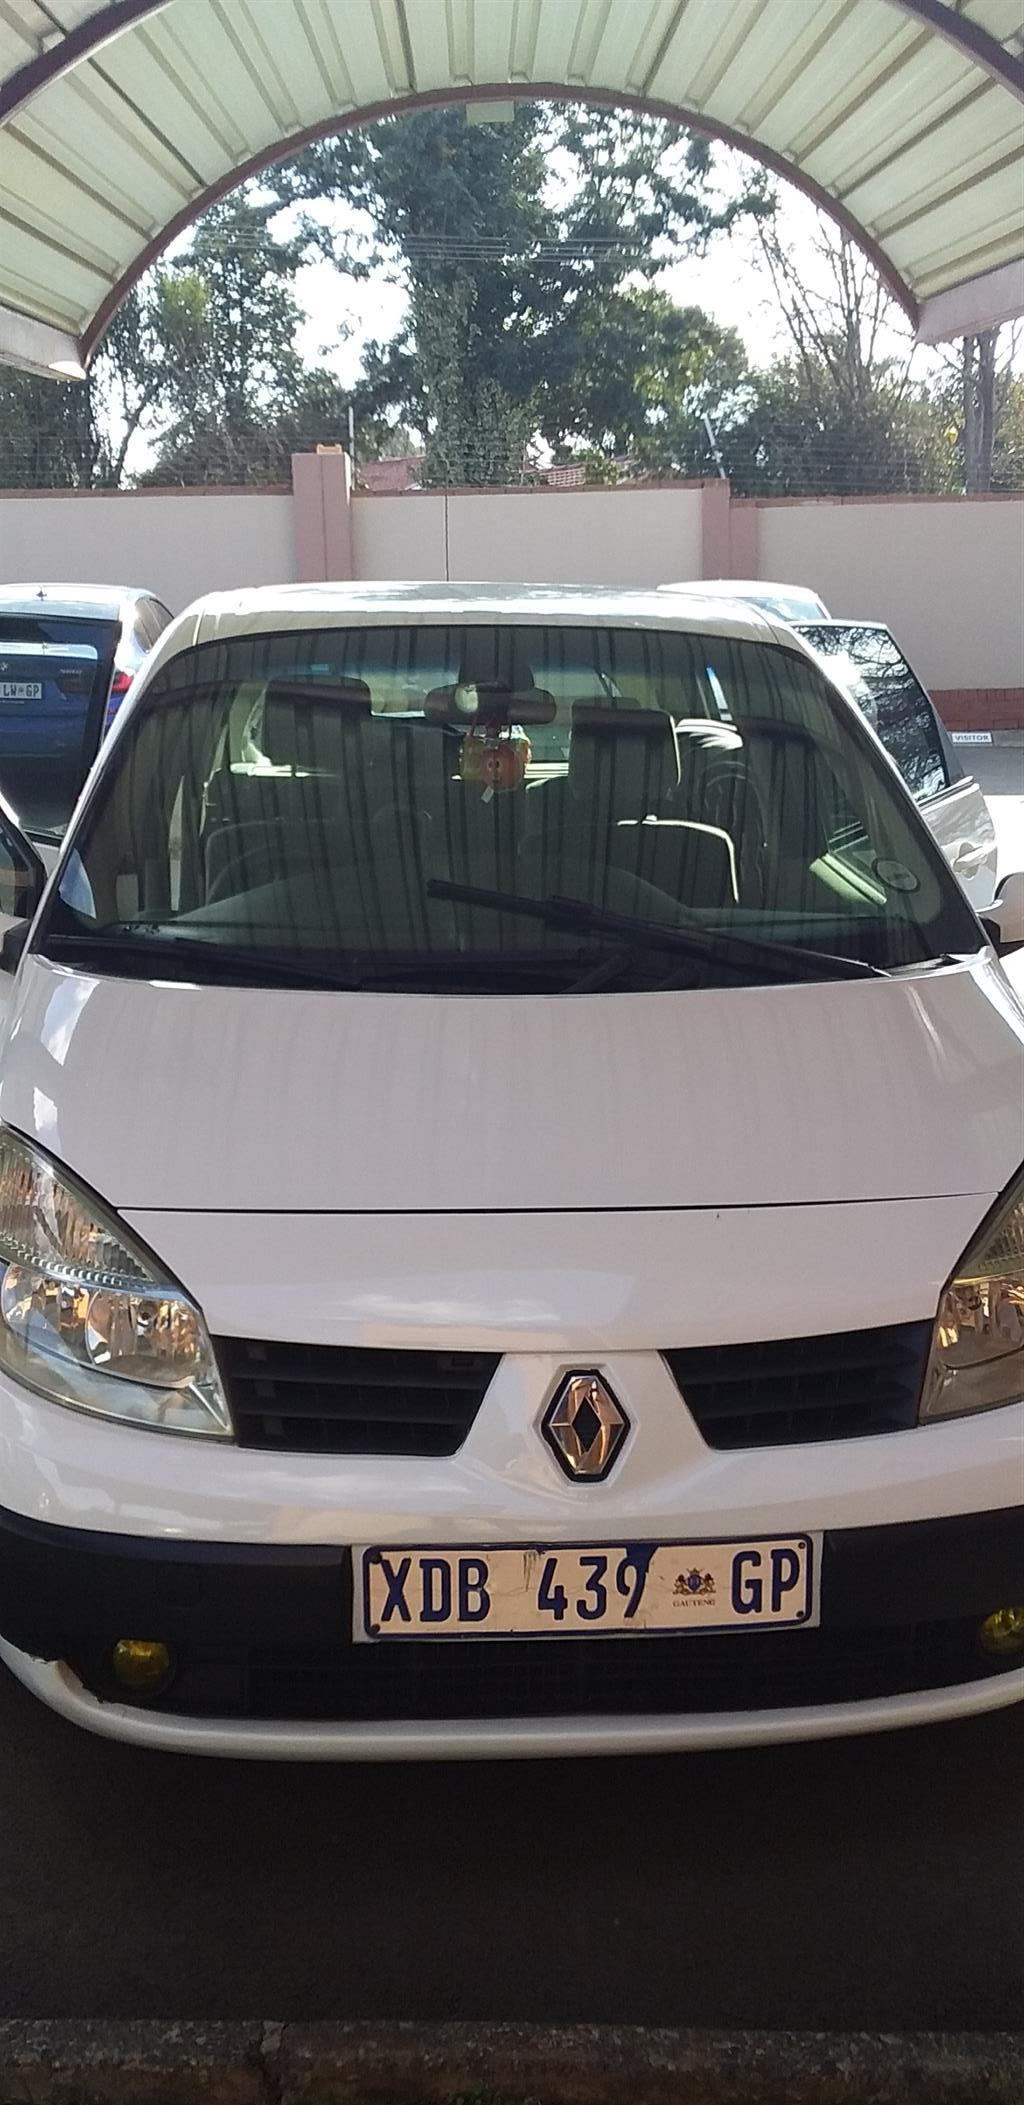 Renault scenic 1.6 16 model 2005, with big space for family in good condition.